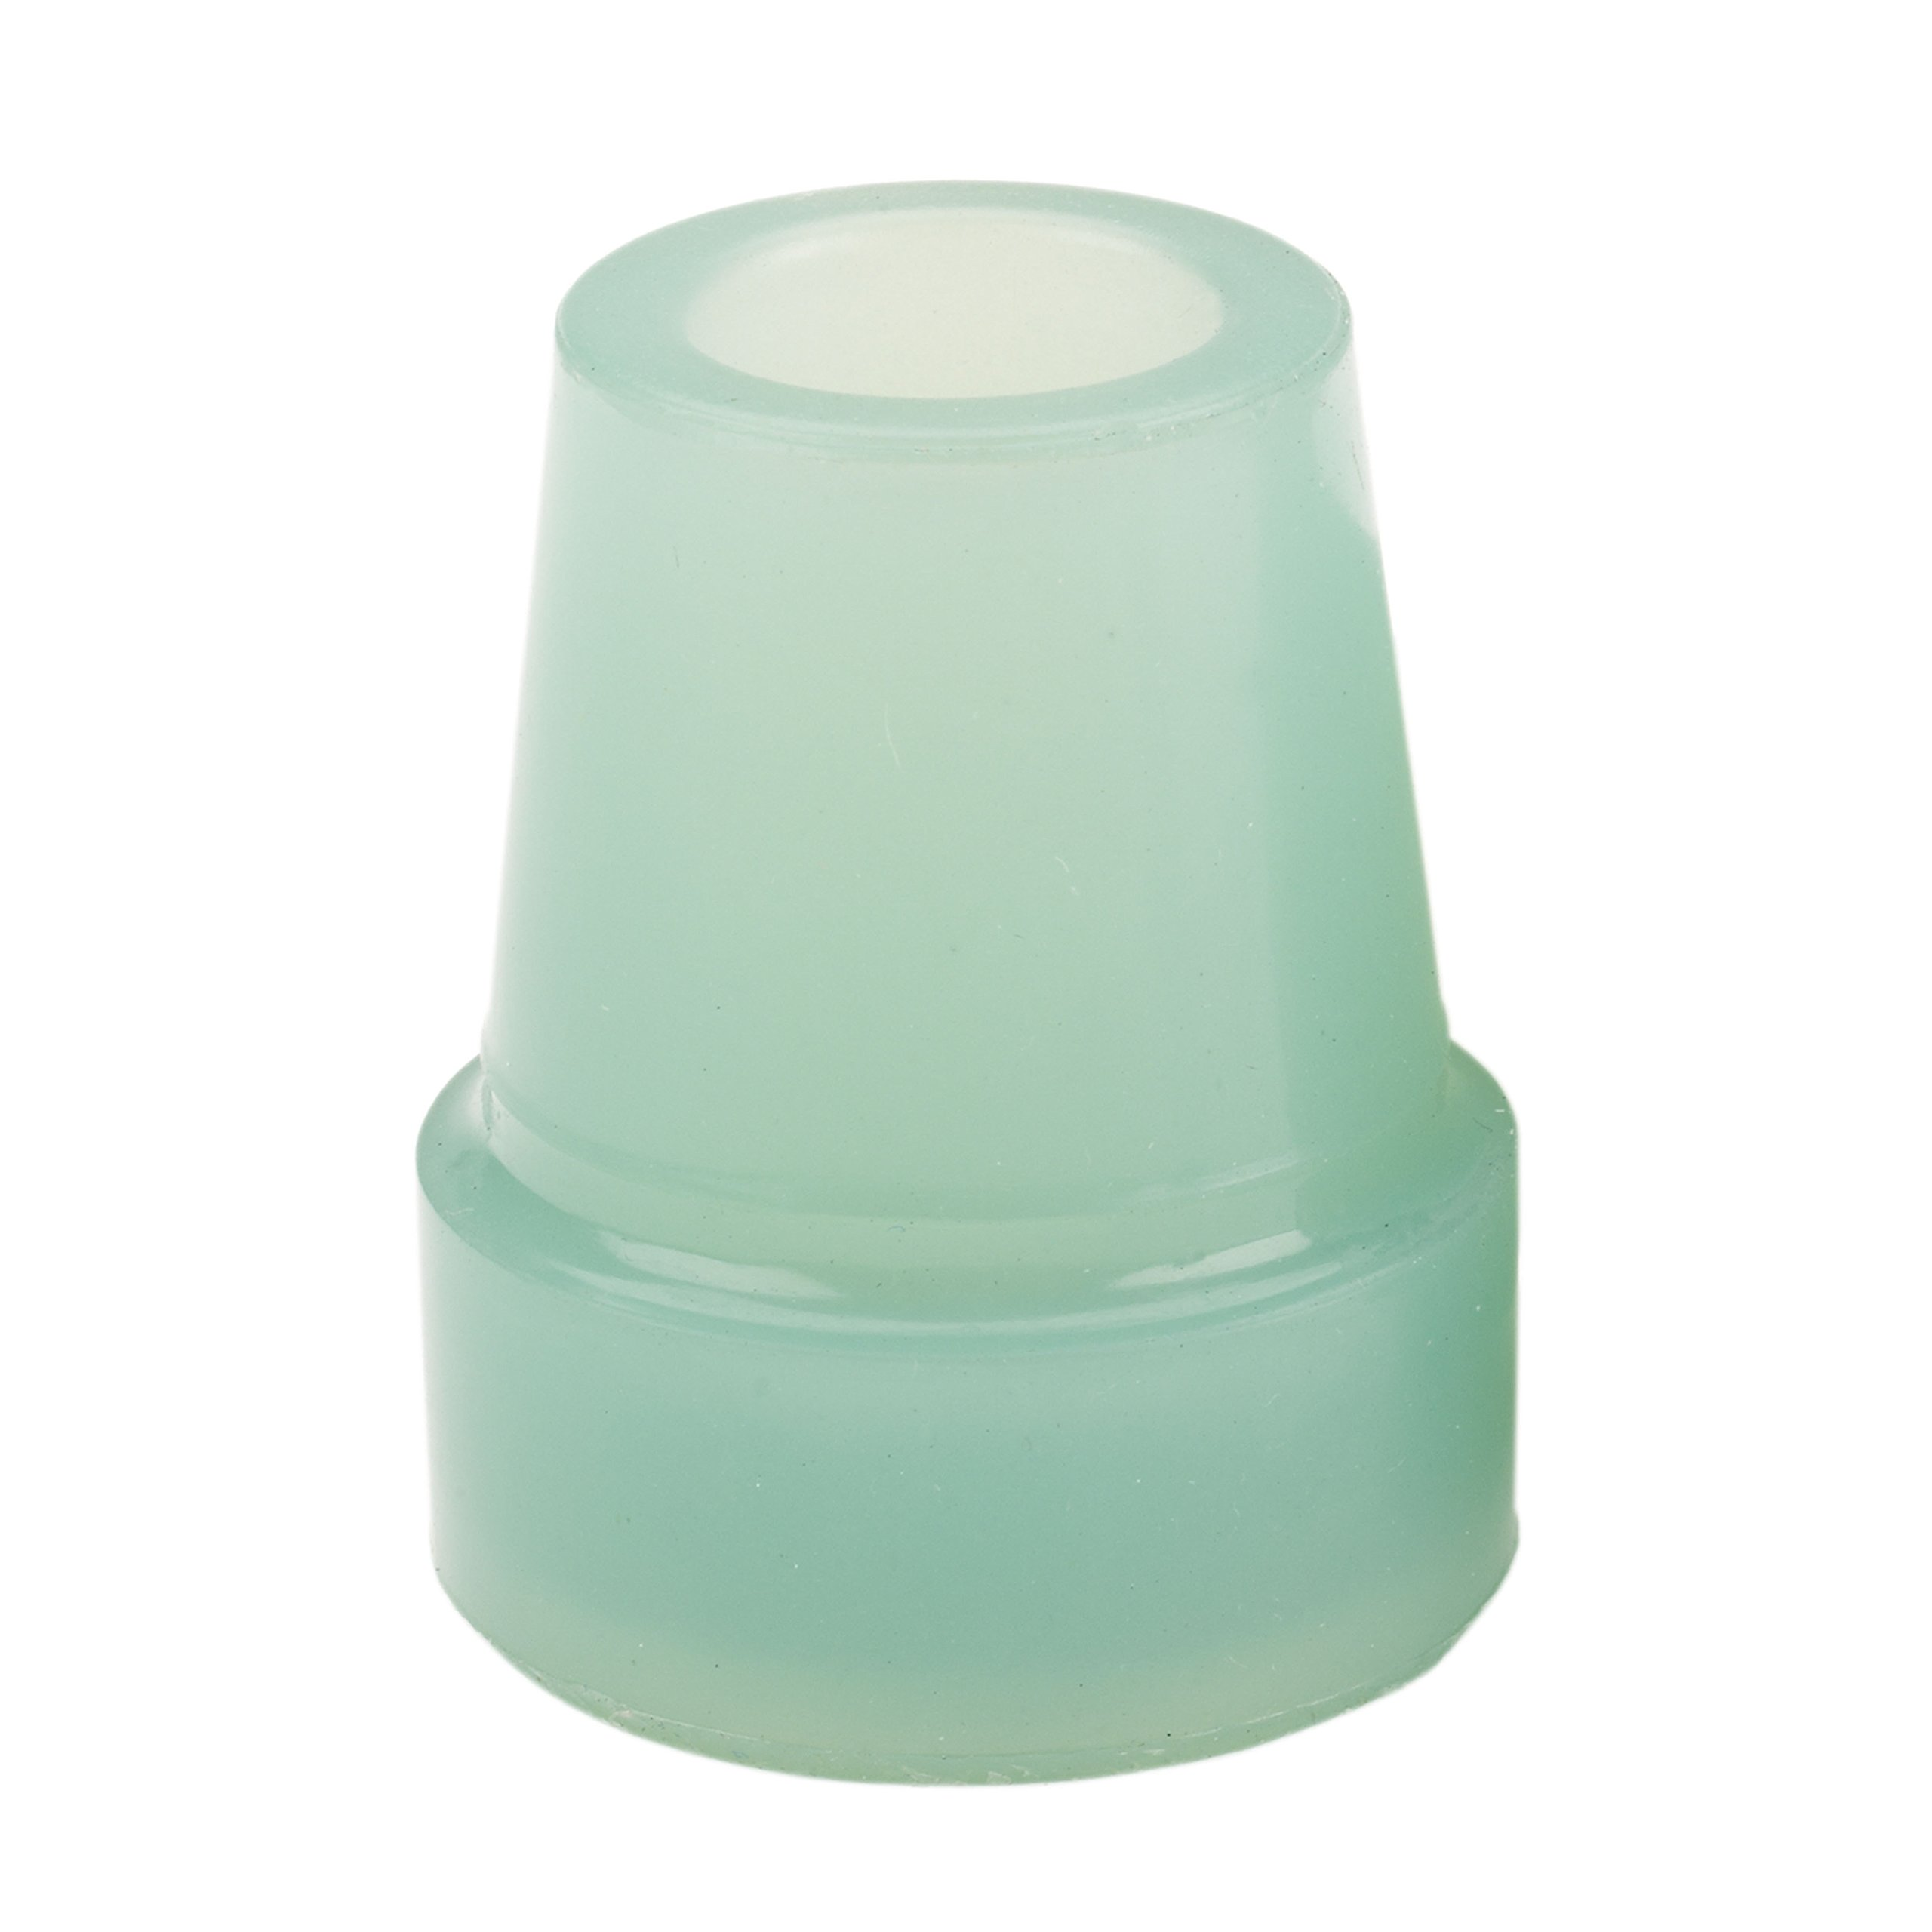 Drive Medical Glow in the Dark Cane Tip, Blue, 3/4 Inch, 2 Count